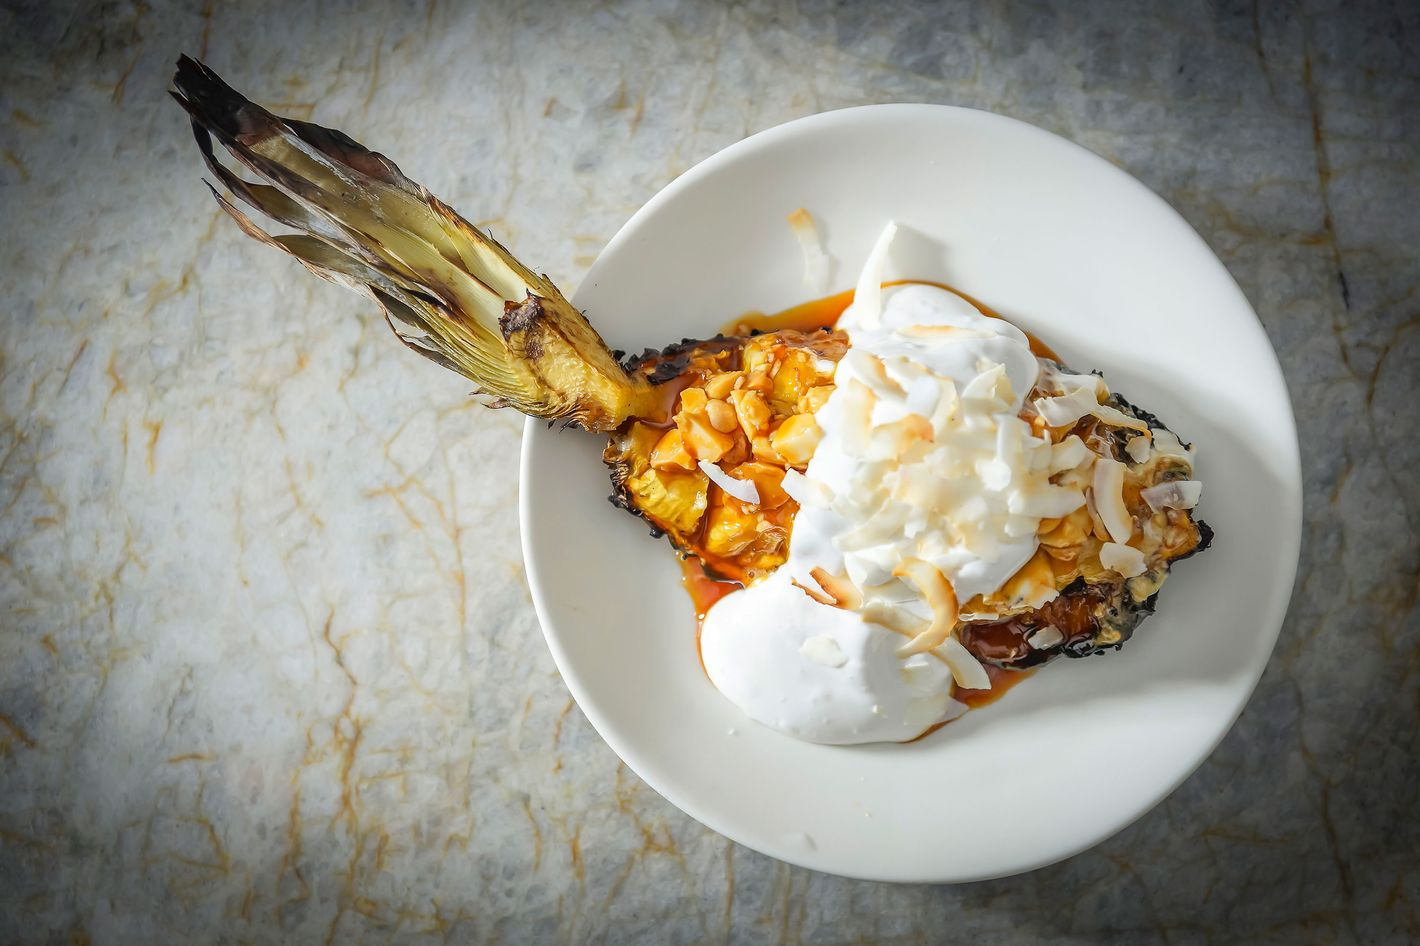 Pastry chef Italivi Reboreda's tandoor-roasted pineapple with tamarind glaze, vegan whipped cream, and macadamia nuts.